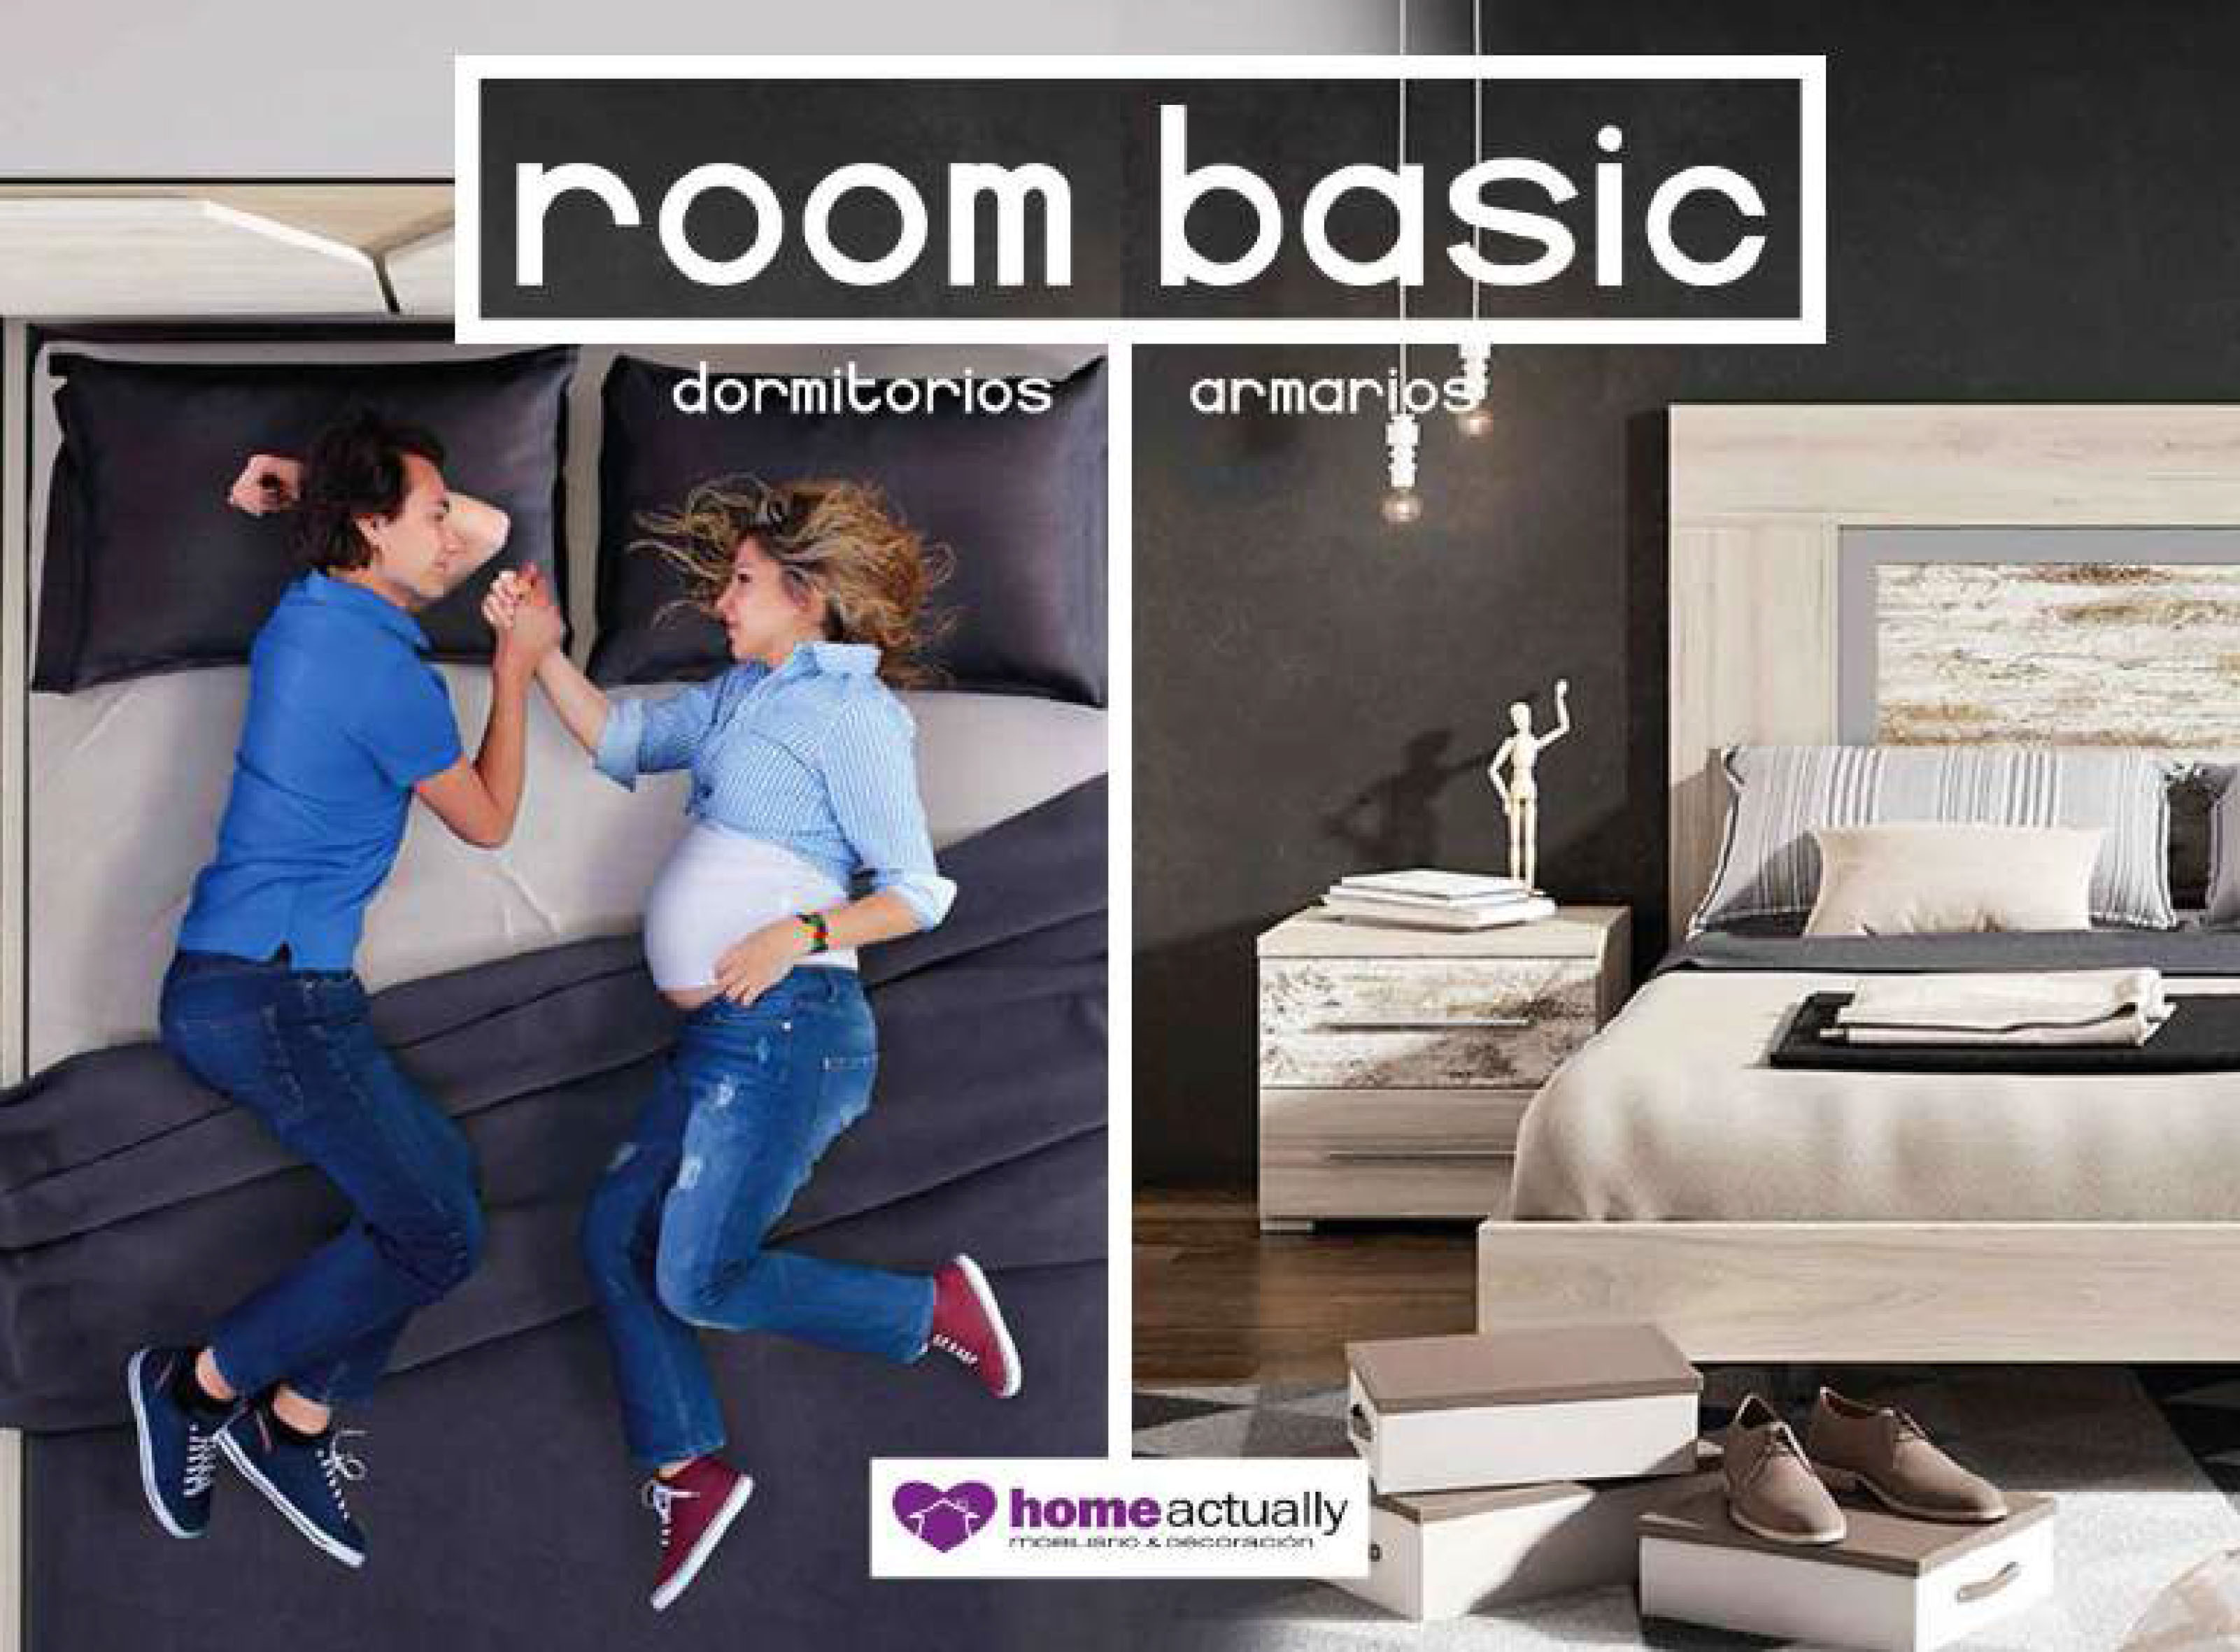 Dormitorios Room basic